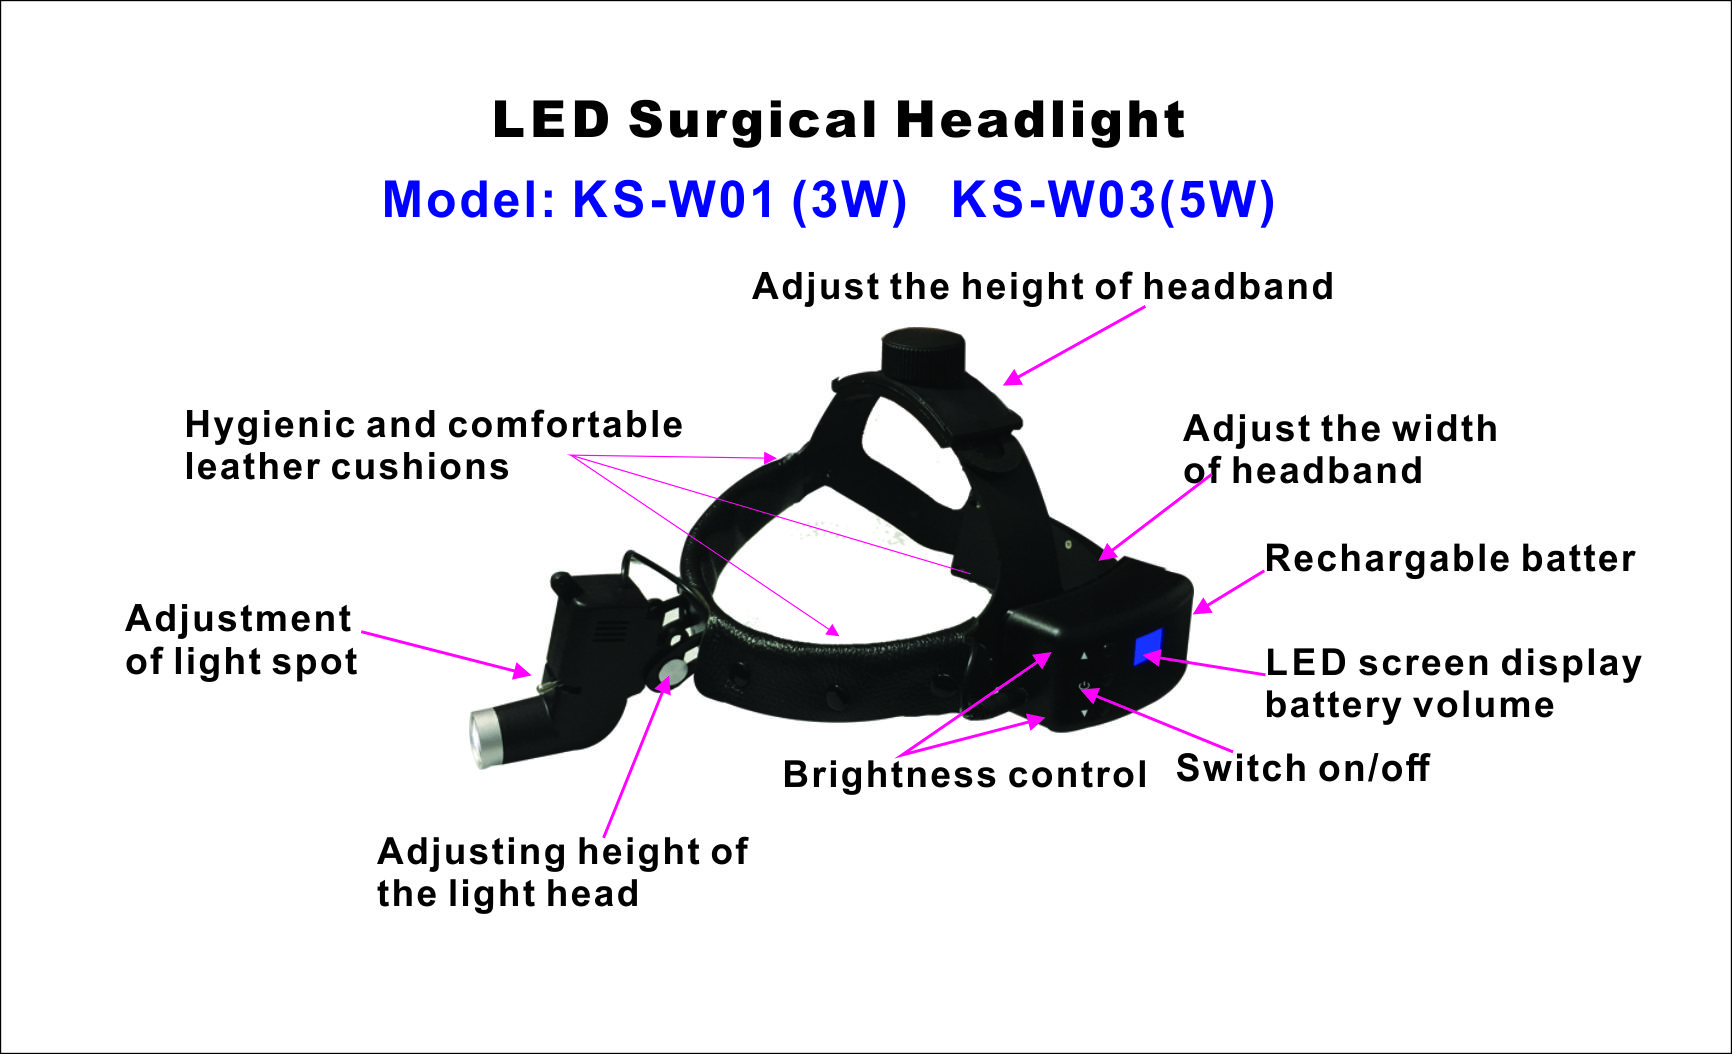 3W Ks-W01 Headlight for Use in a Medical,curing in dental surgery